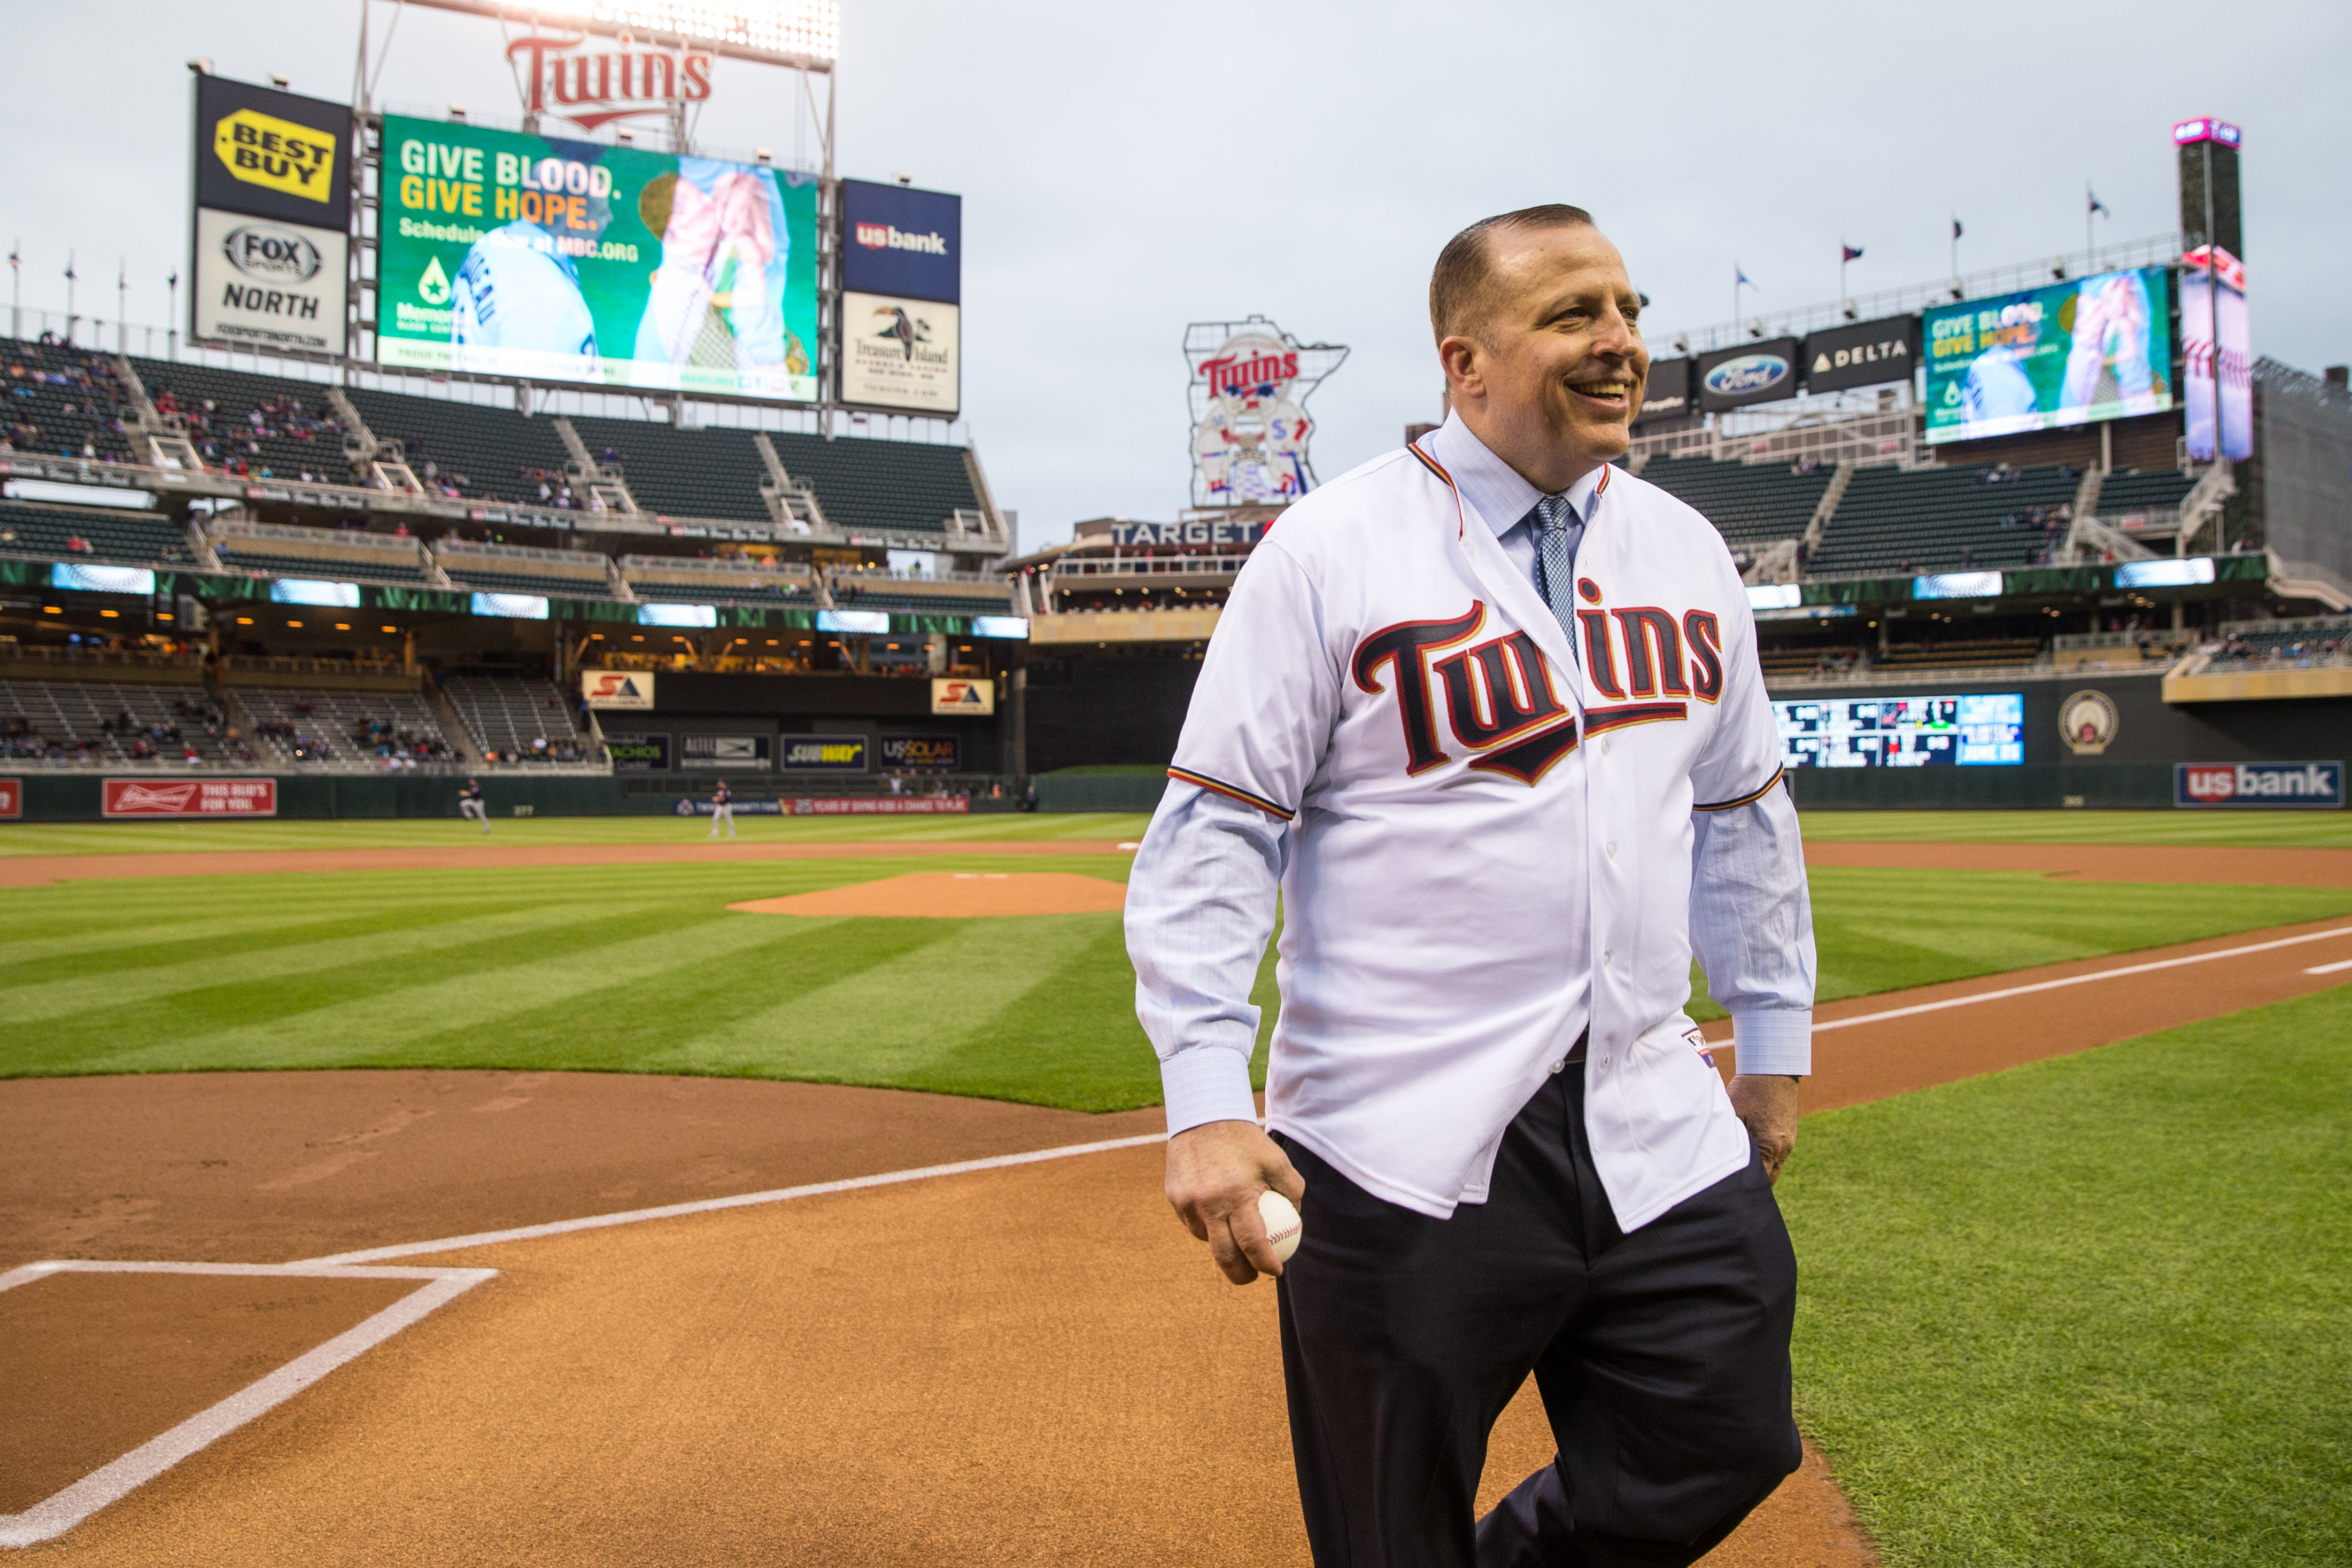 MINNEAPOLIS, MN- APRIL 26: New Minnesota Timberwolves head coach Tom Thibodeau throws out a first pitch prior to the game between the Minnesota Twins and the Cleveland Indians on April 26, 2016 at Target Field in Minneapolis, Minnesota. The Twins defeated the Indians 6-5. (Photo by Brace Hemmelgarn/Minnesota Twins/Getty Images)